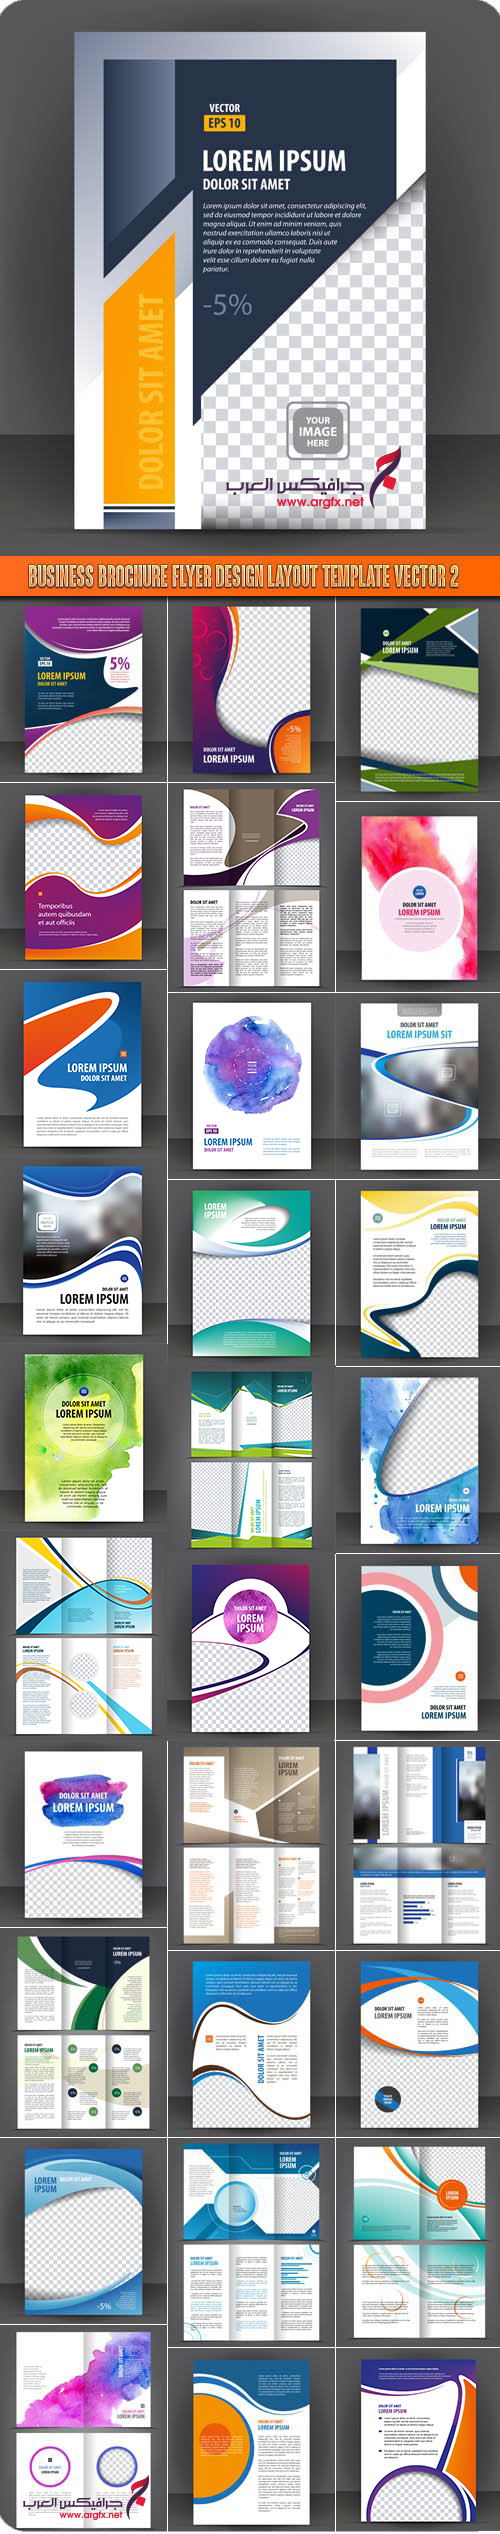 Business brochure flyer design layout template vector 2